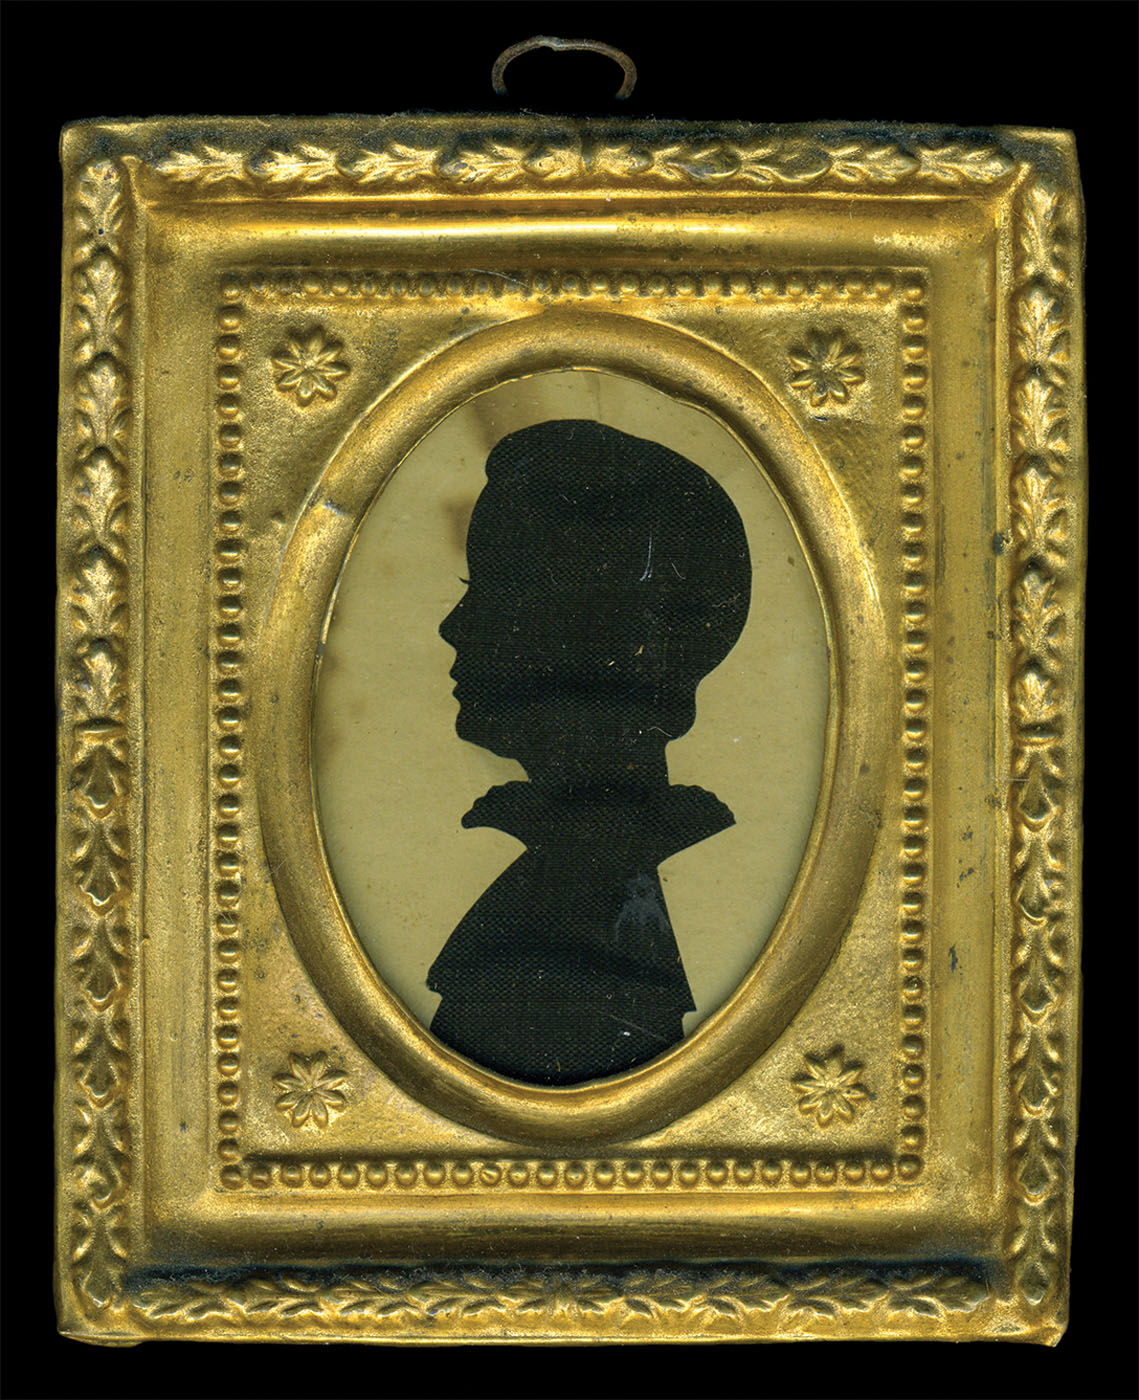 Lot 183: 19th C  Silhouettes - Willis Henry Auctions, Inc